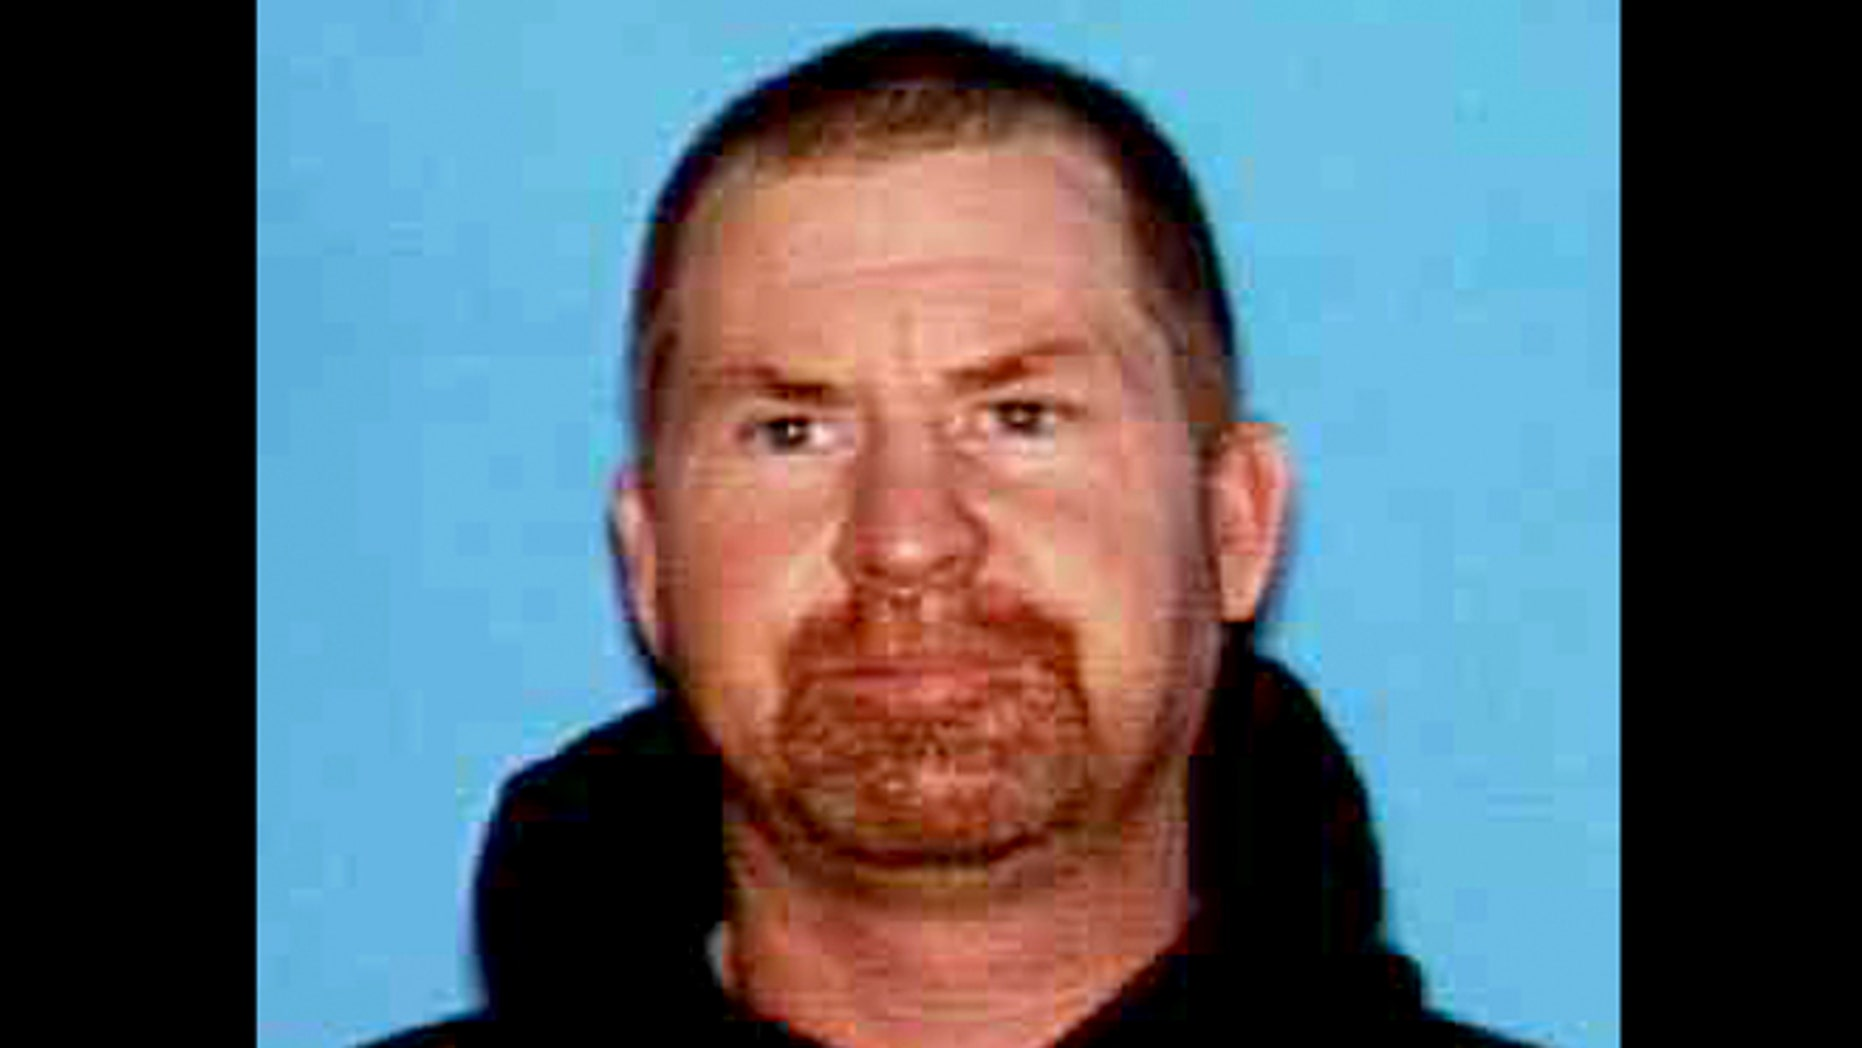 This undated photo released by the Shasta County Sheriff's office shows Shane Miller, 45, who is suspected of a triple homicide at his home in rural Northern California.